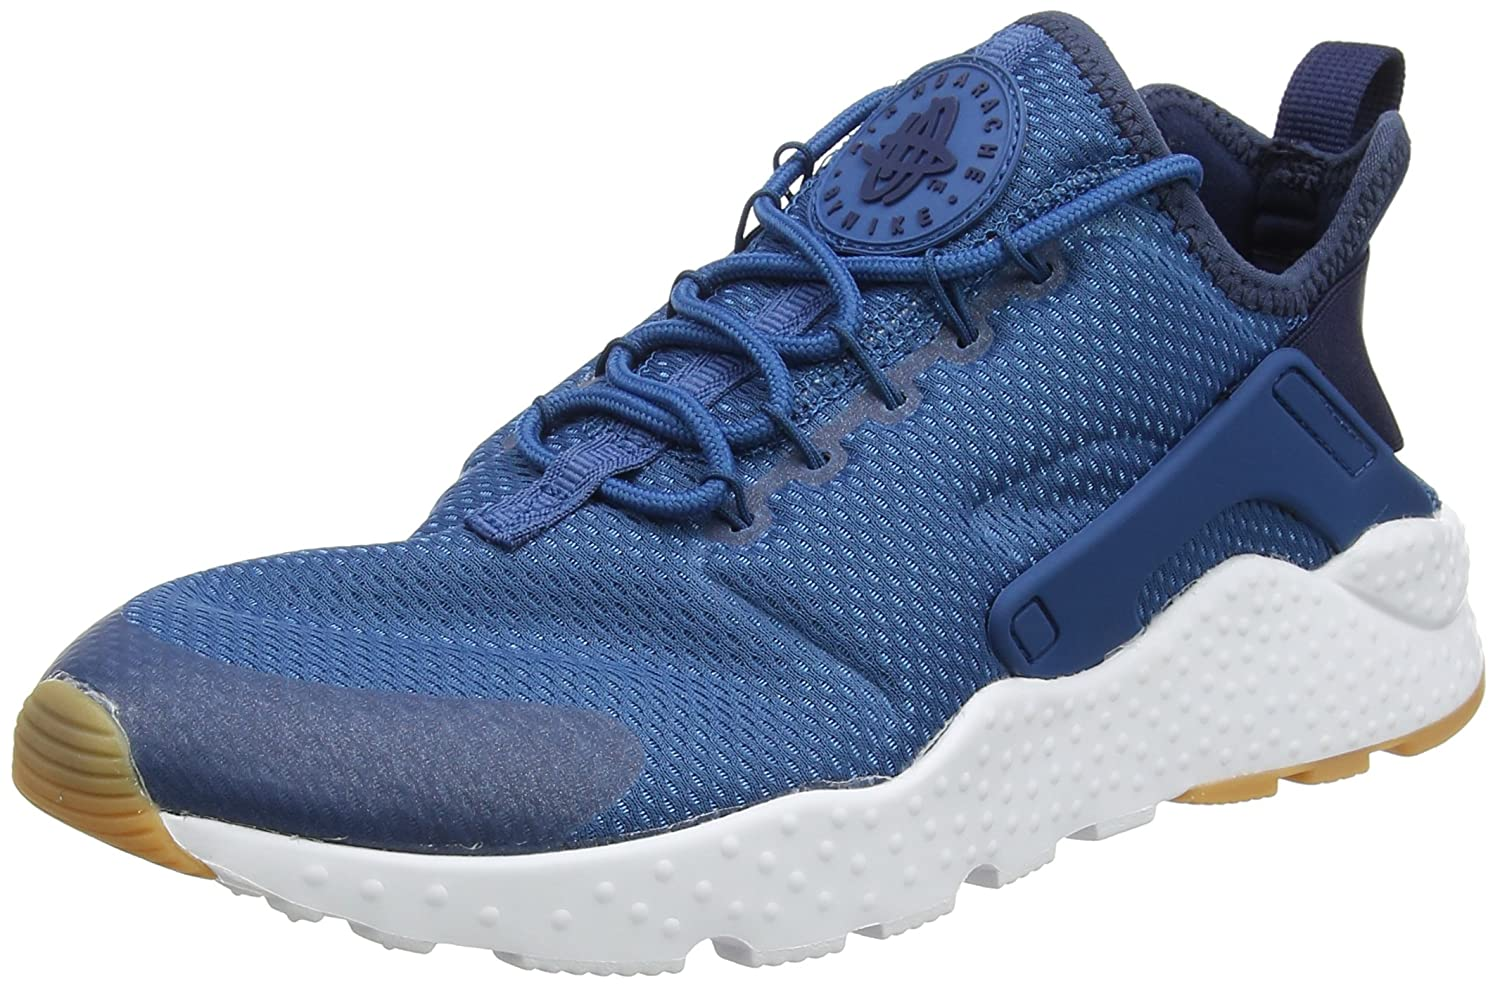 NIKE Women's Air Shoe Huarache Run Ultra Running Shoe Air B00AZRNW3A 7.5 B(M) US|Industrailblue/Midnightnavy 8b8956